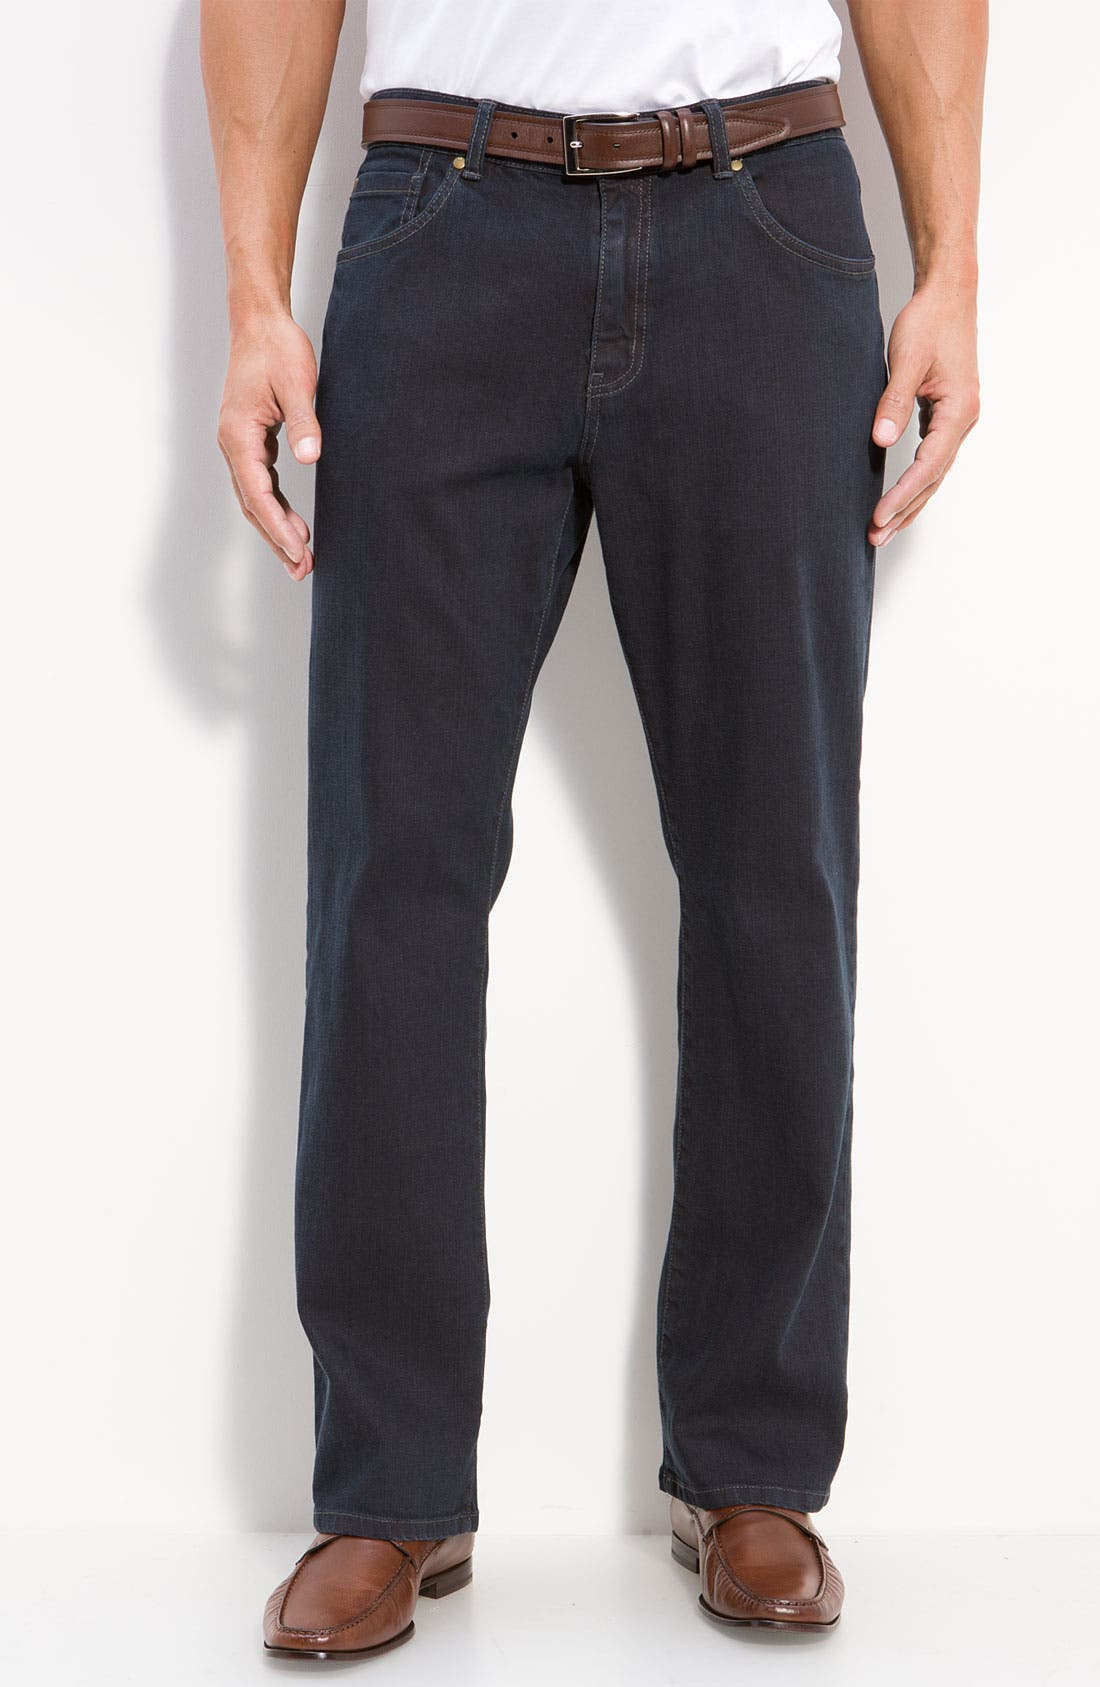 Main Image - Cutter & Buck 'Madison Park' Jeans (Carbon) (Big & Tall)